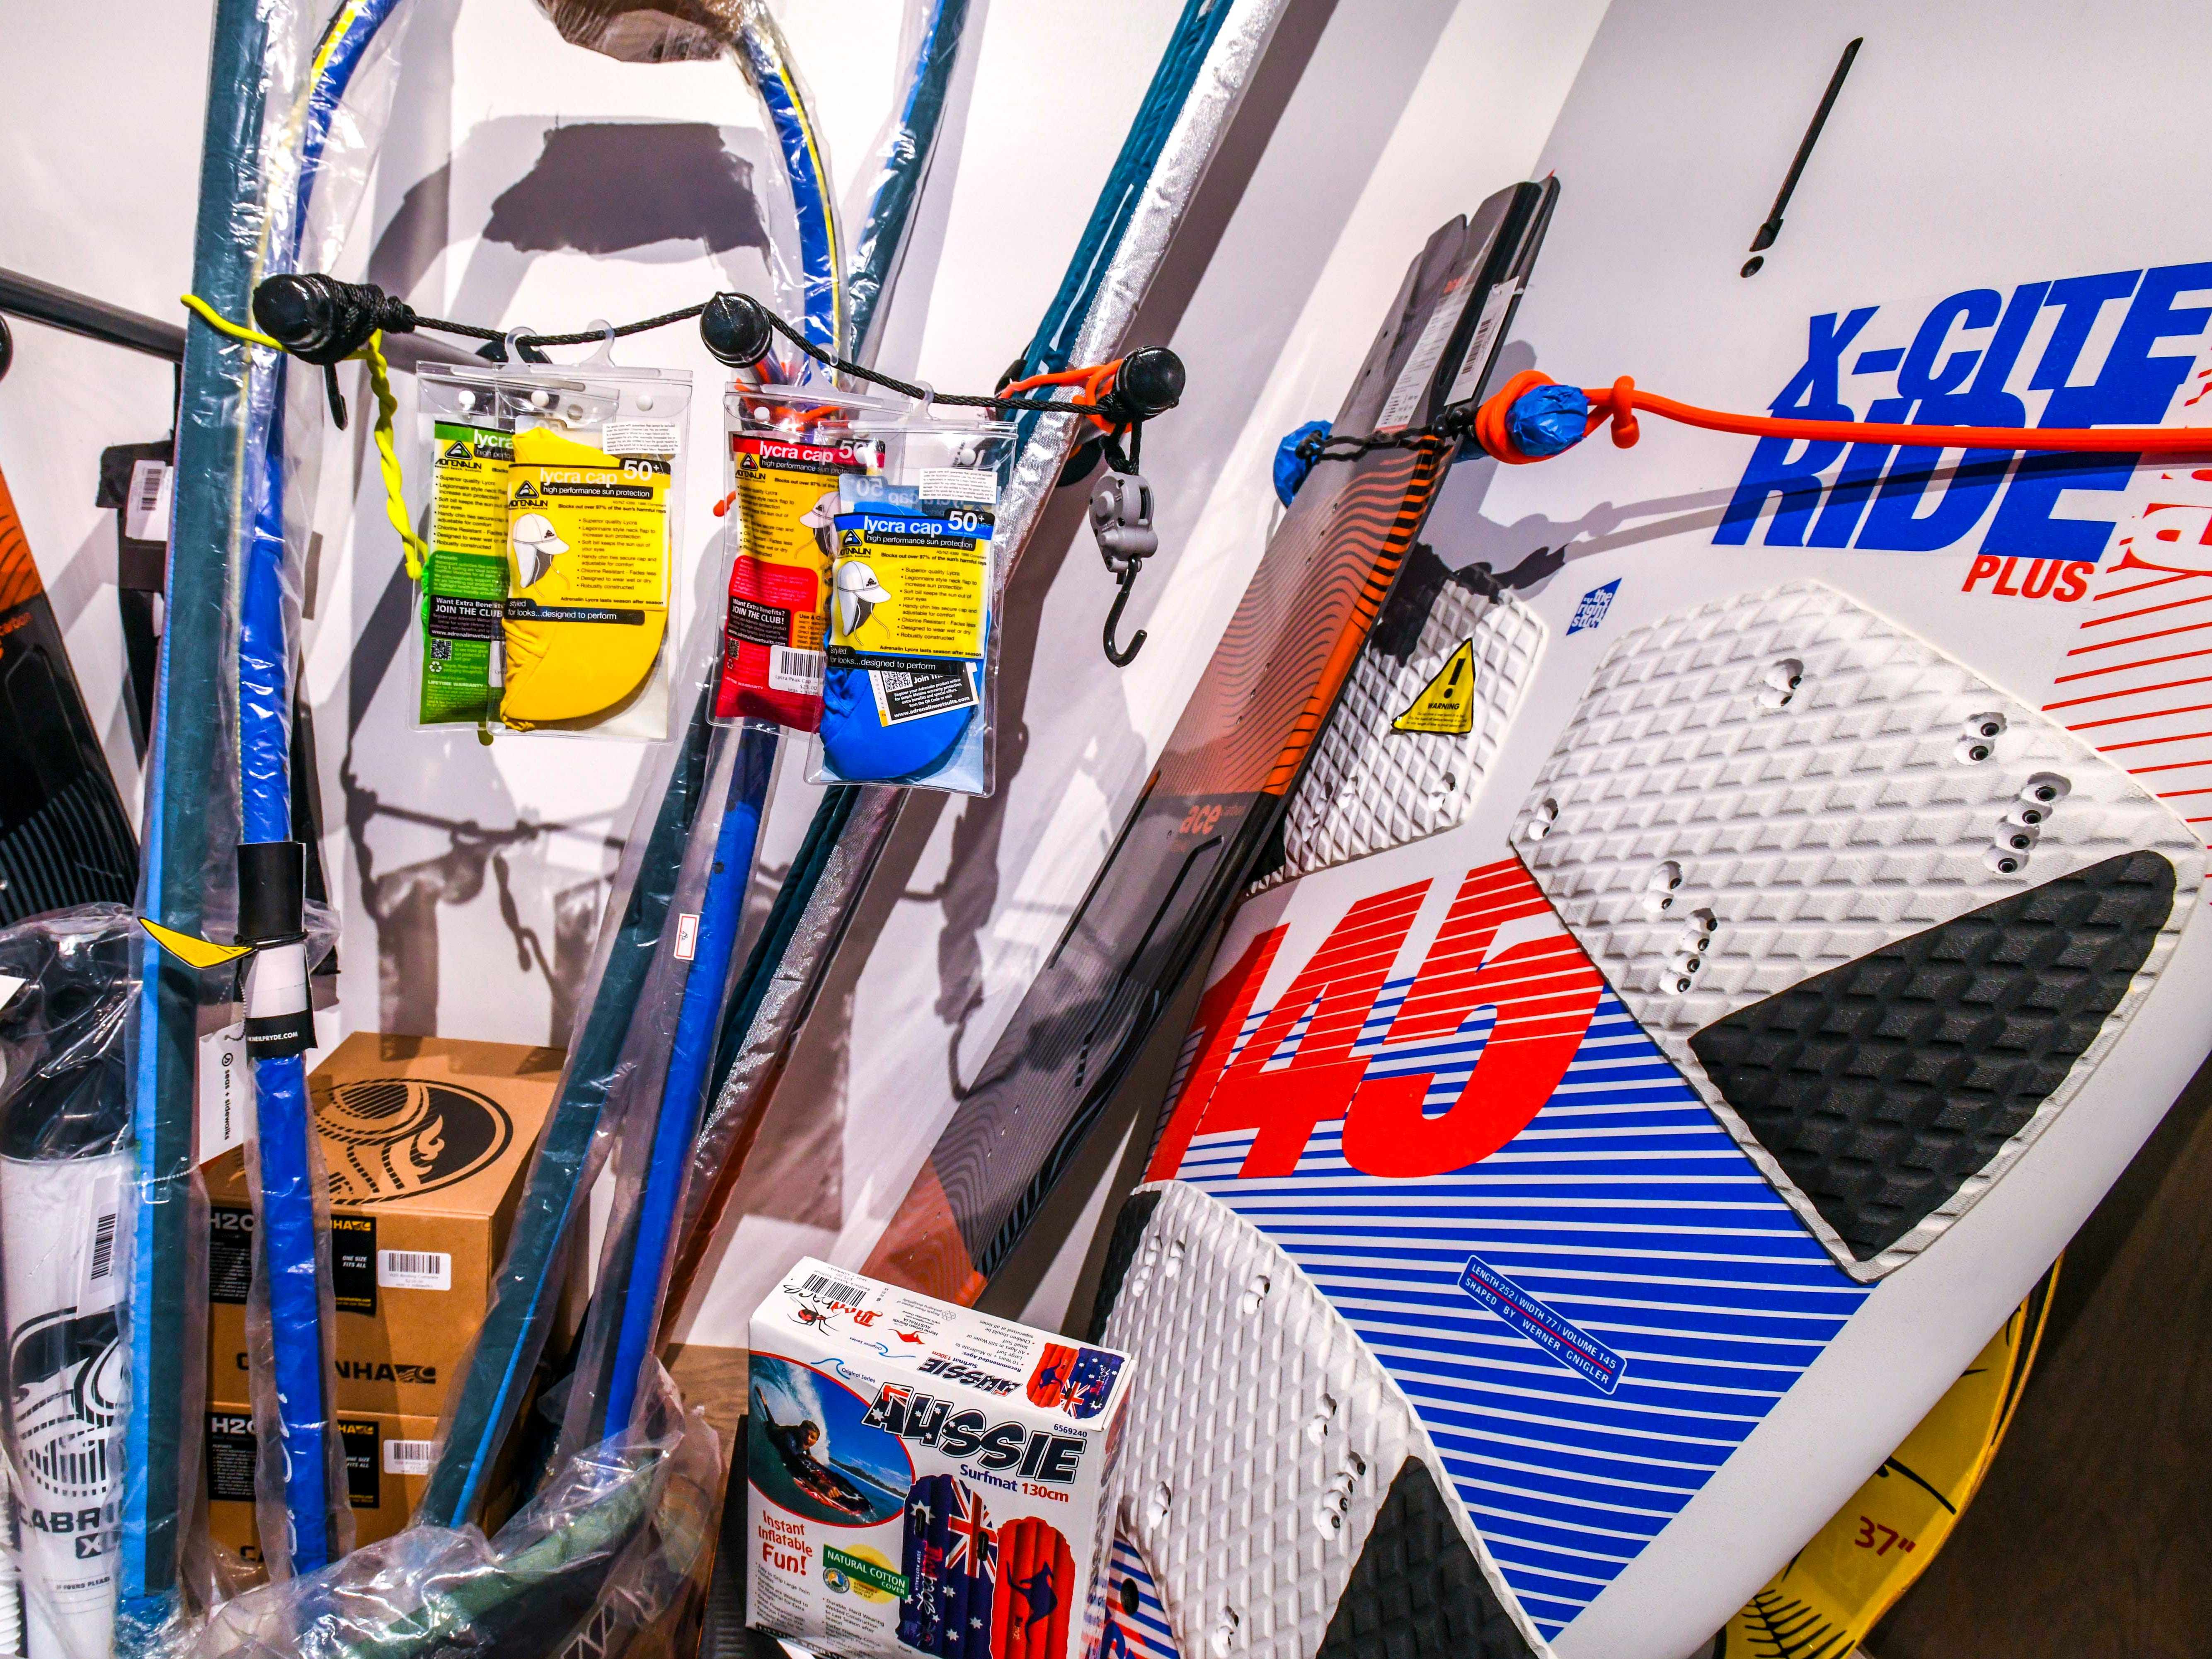 A collection of water sport equipment could be found at the Seas and Sidewalks store at the Micronesia Mall on Friday, Jan. 11, 2019. Kiteboarding, windsurfing and other aquatic sport accessories could be found at the business, which opened it's door to the public last year in November.